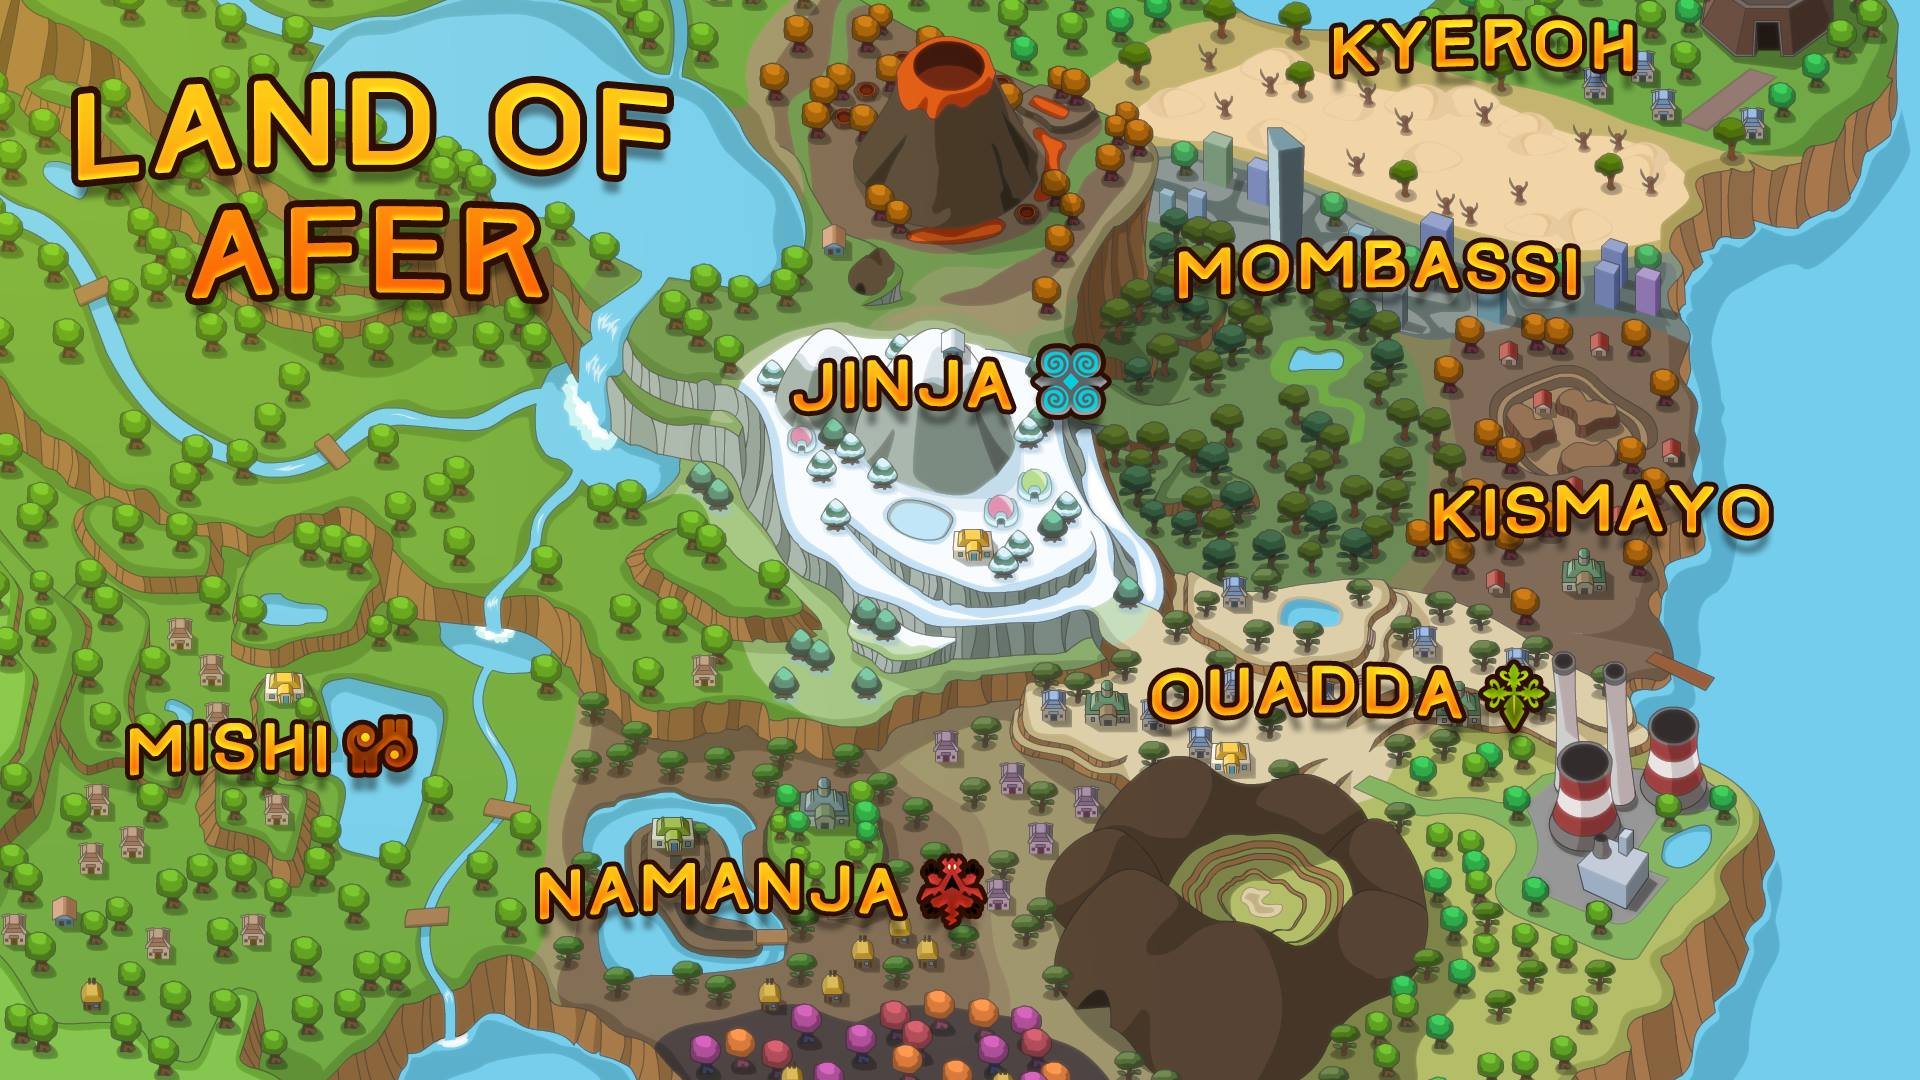 Terra monsters 2: land of afer for android download apk free.